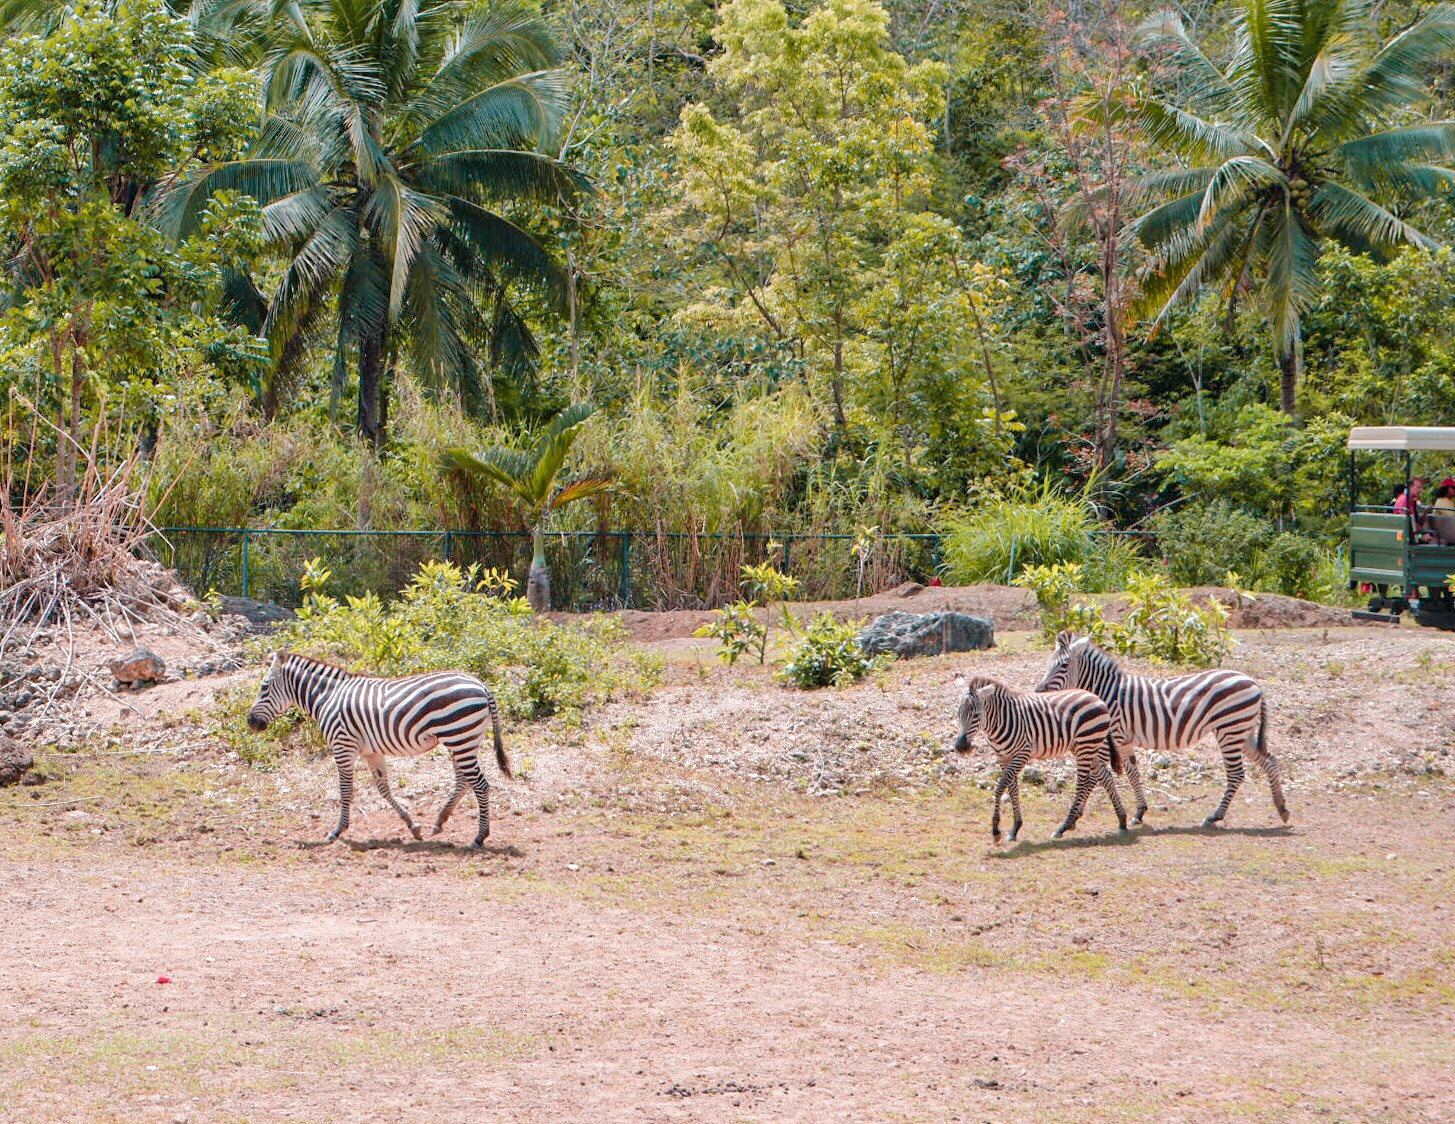 Cebu Safari and Adventure Park + Zayn's First Zoo Experience